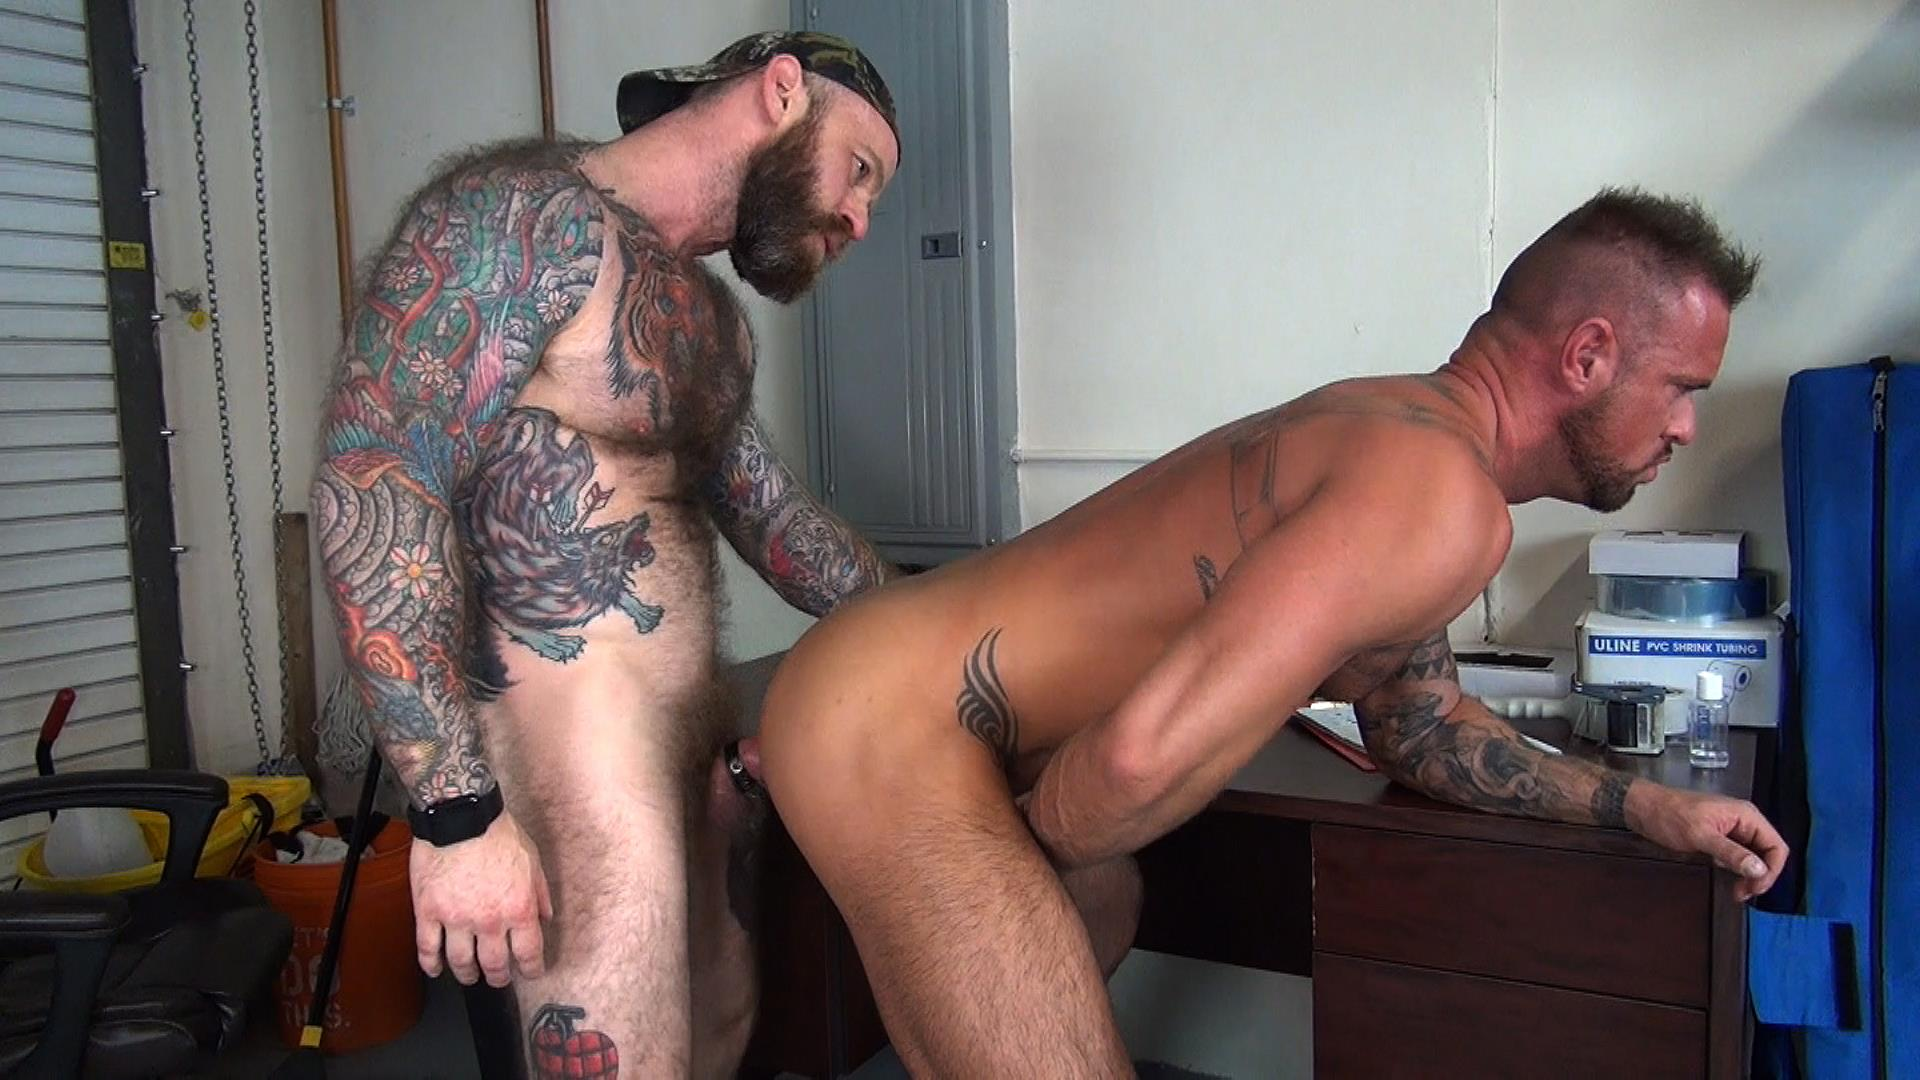 Raw-Fuck-Club-Jack-Dixon-and-Michael-Roman-Hairy-Muscle-Daddy-Bareback-Gay-Sex-Video-08 Taking A Raw Ride On Jack Dixon's Big Fat Daddy Cock